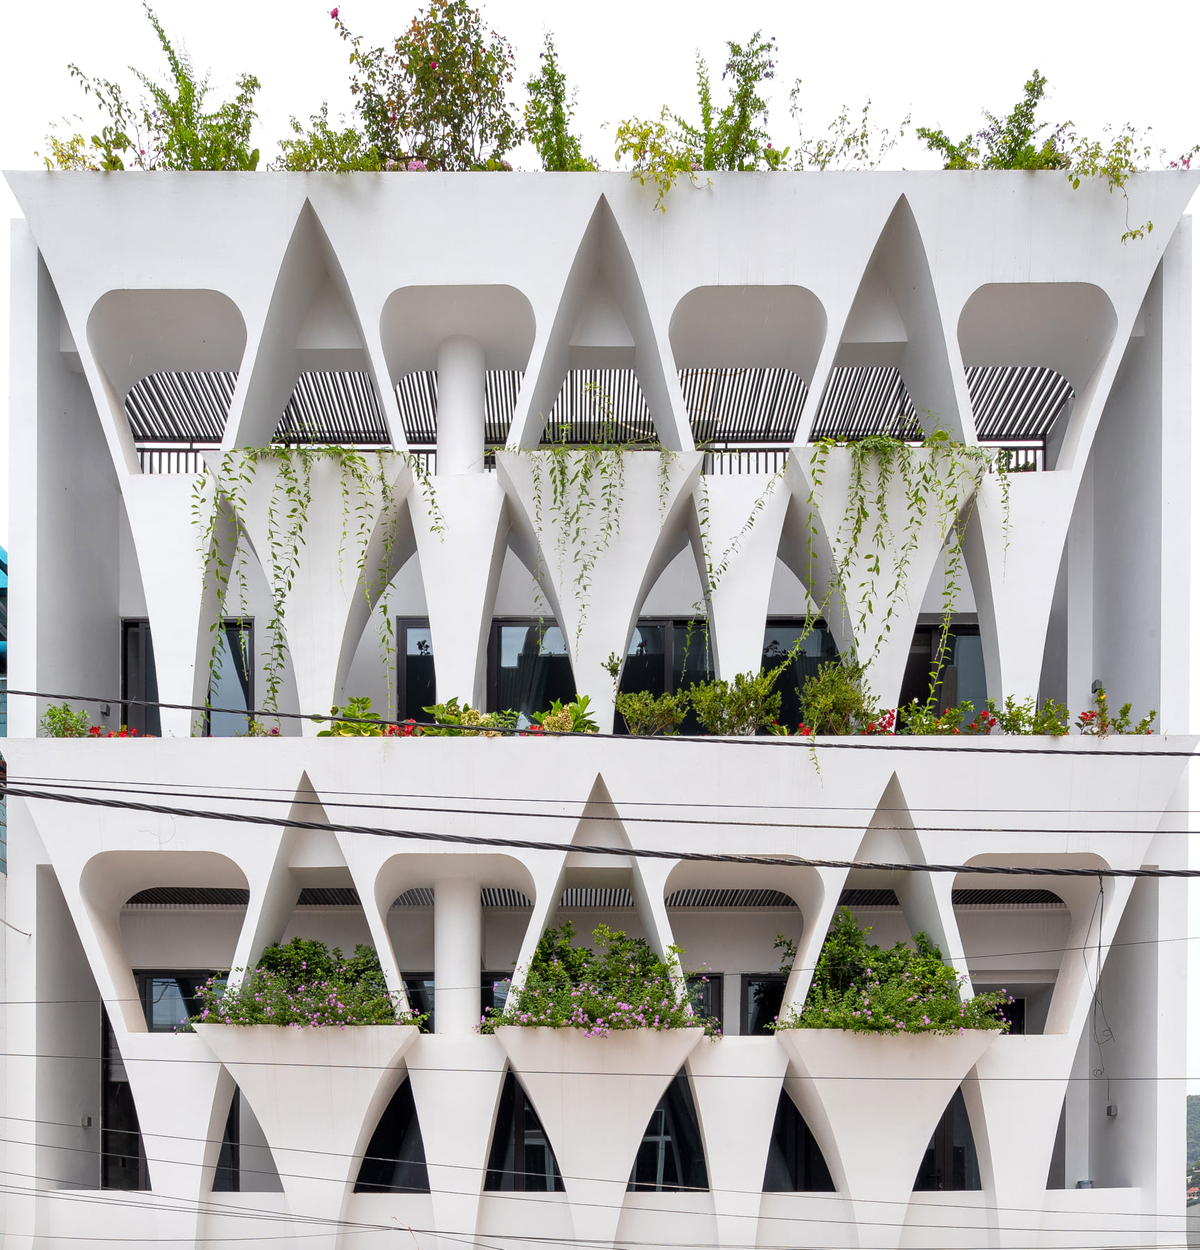 The facade is inspired by hands that are cherishing each green patch.